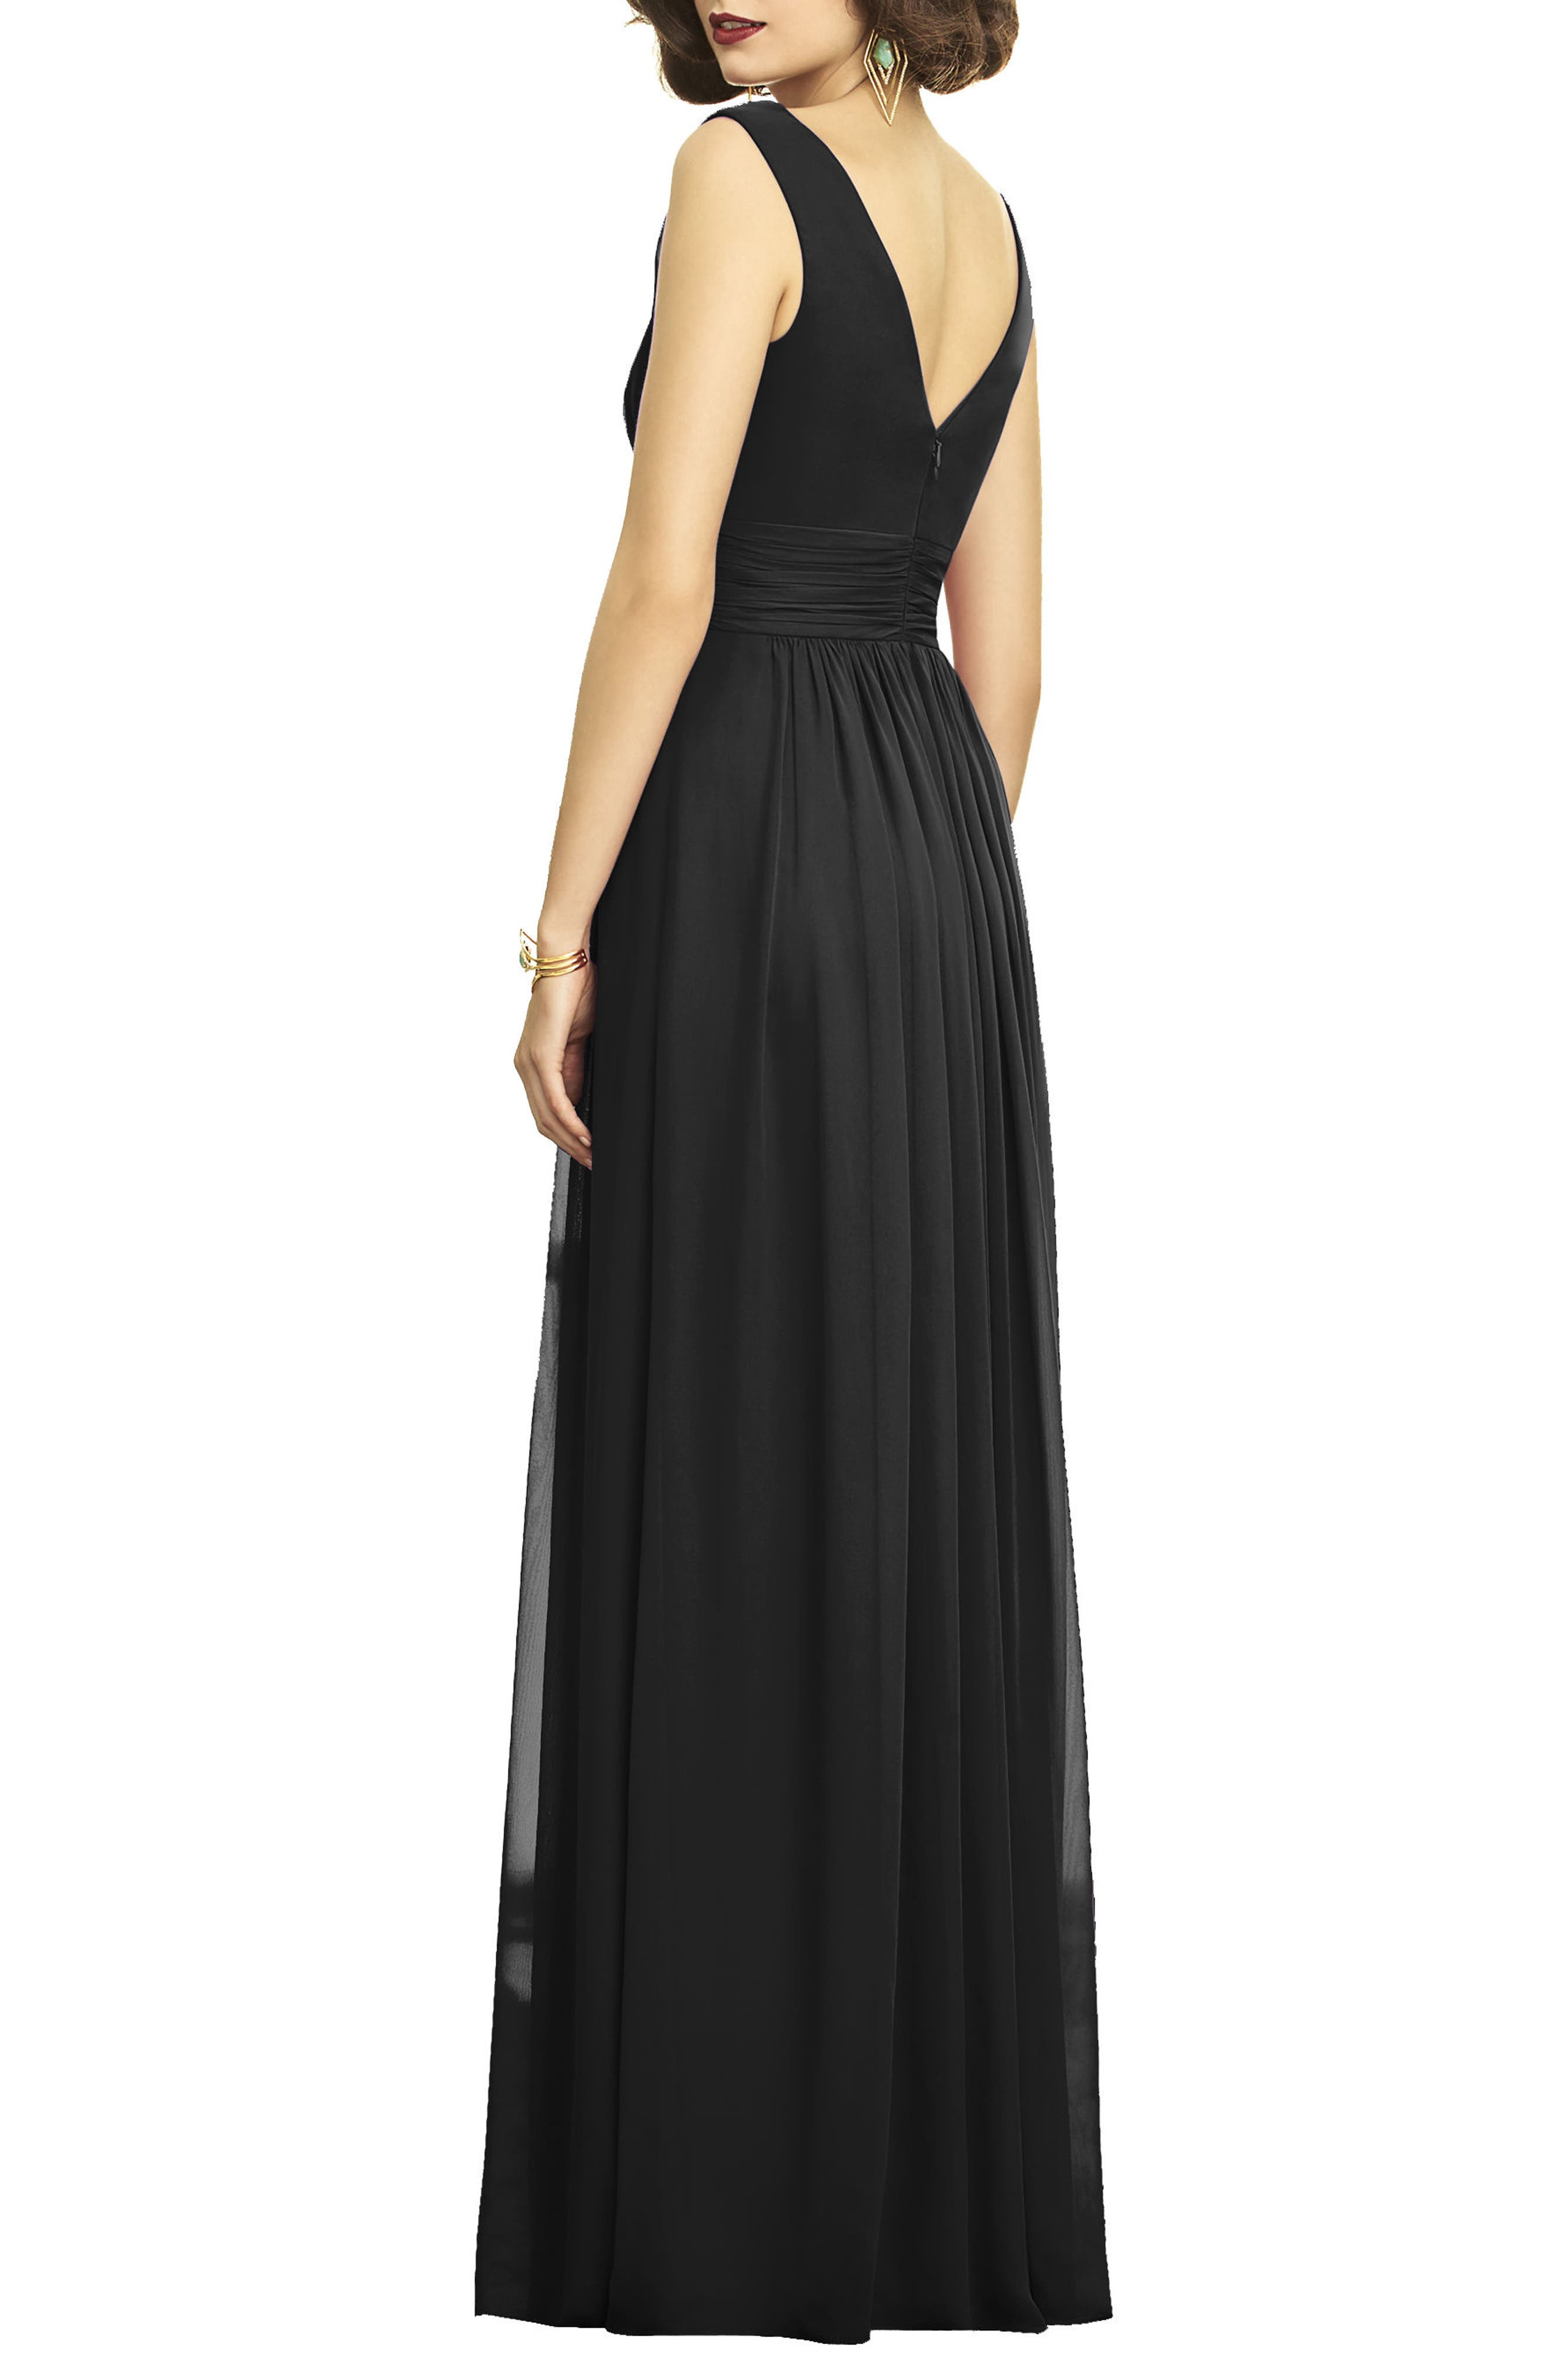 DESSY COLLECTION, Lux V-Neck Chiffon Gown, Alternate thumbnail 2, color, BLACK